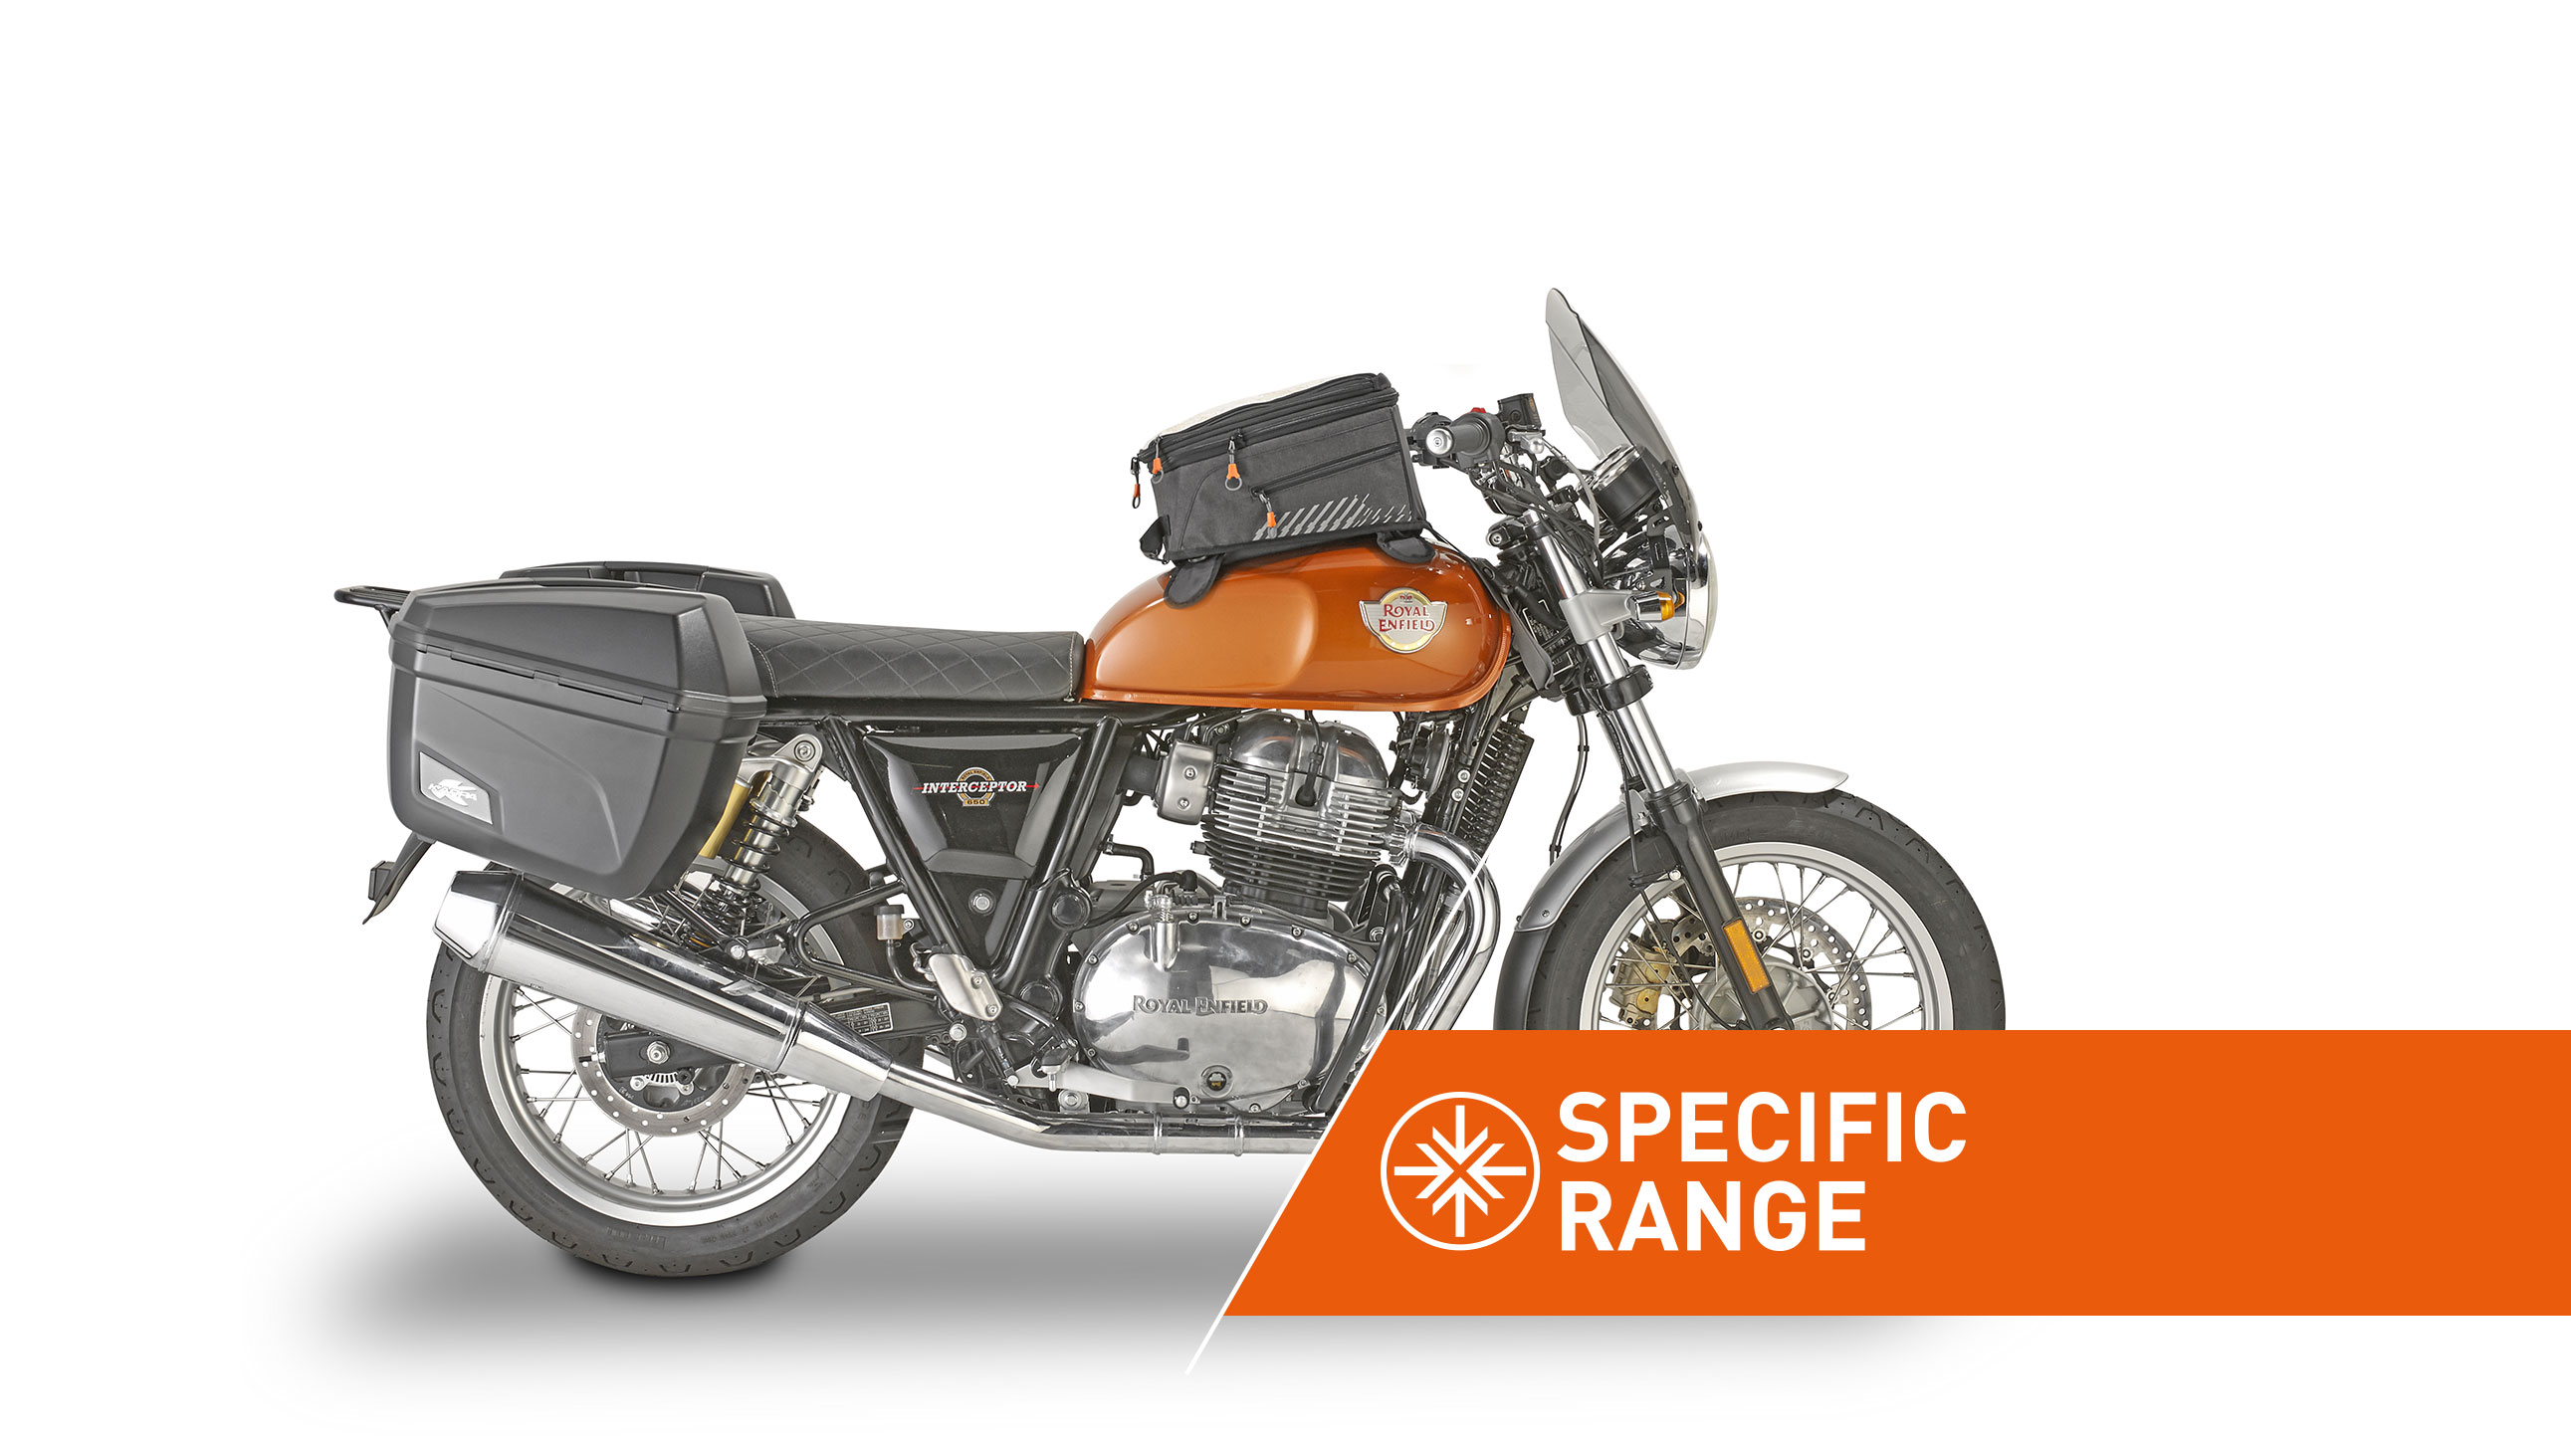 Specific range accessories for ROYAL ENFIELD INTERCEPTOR 650 by KAPPA MOTO